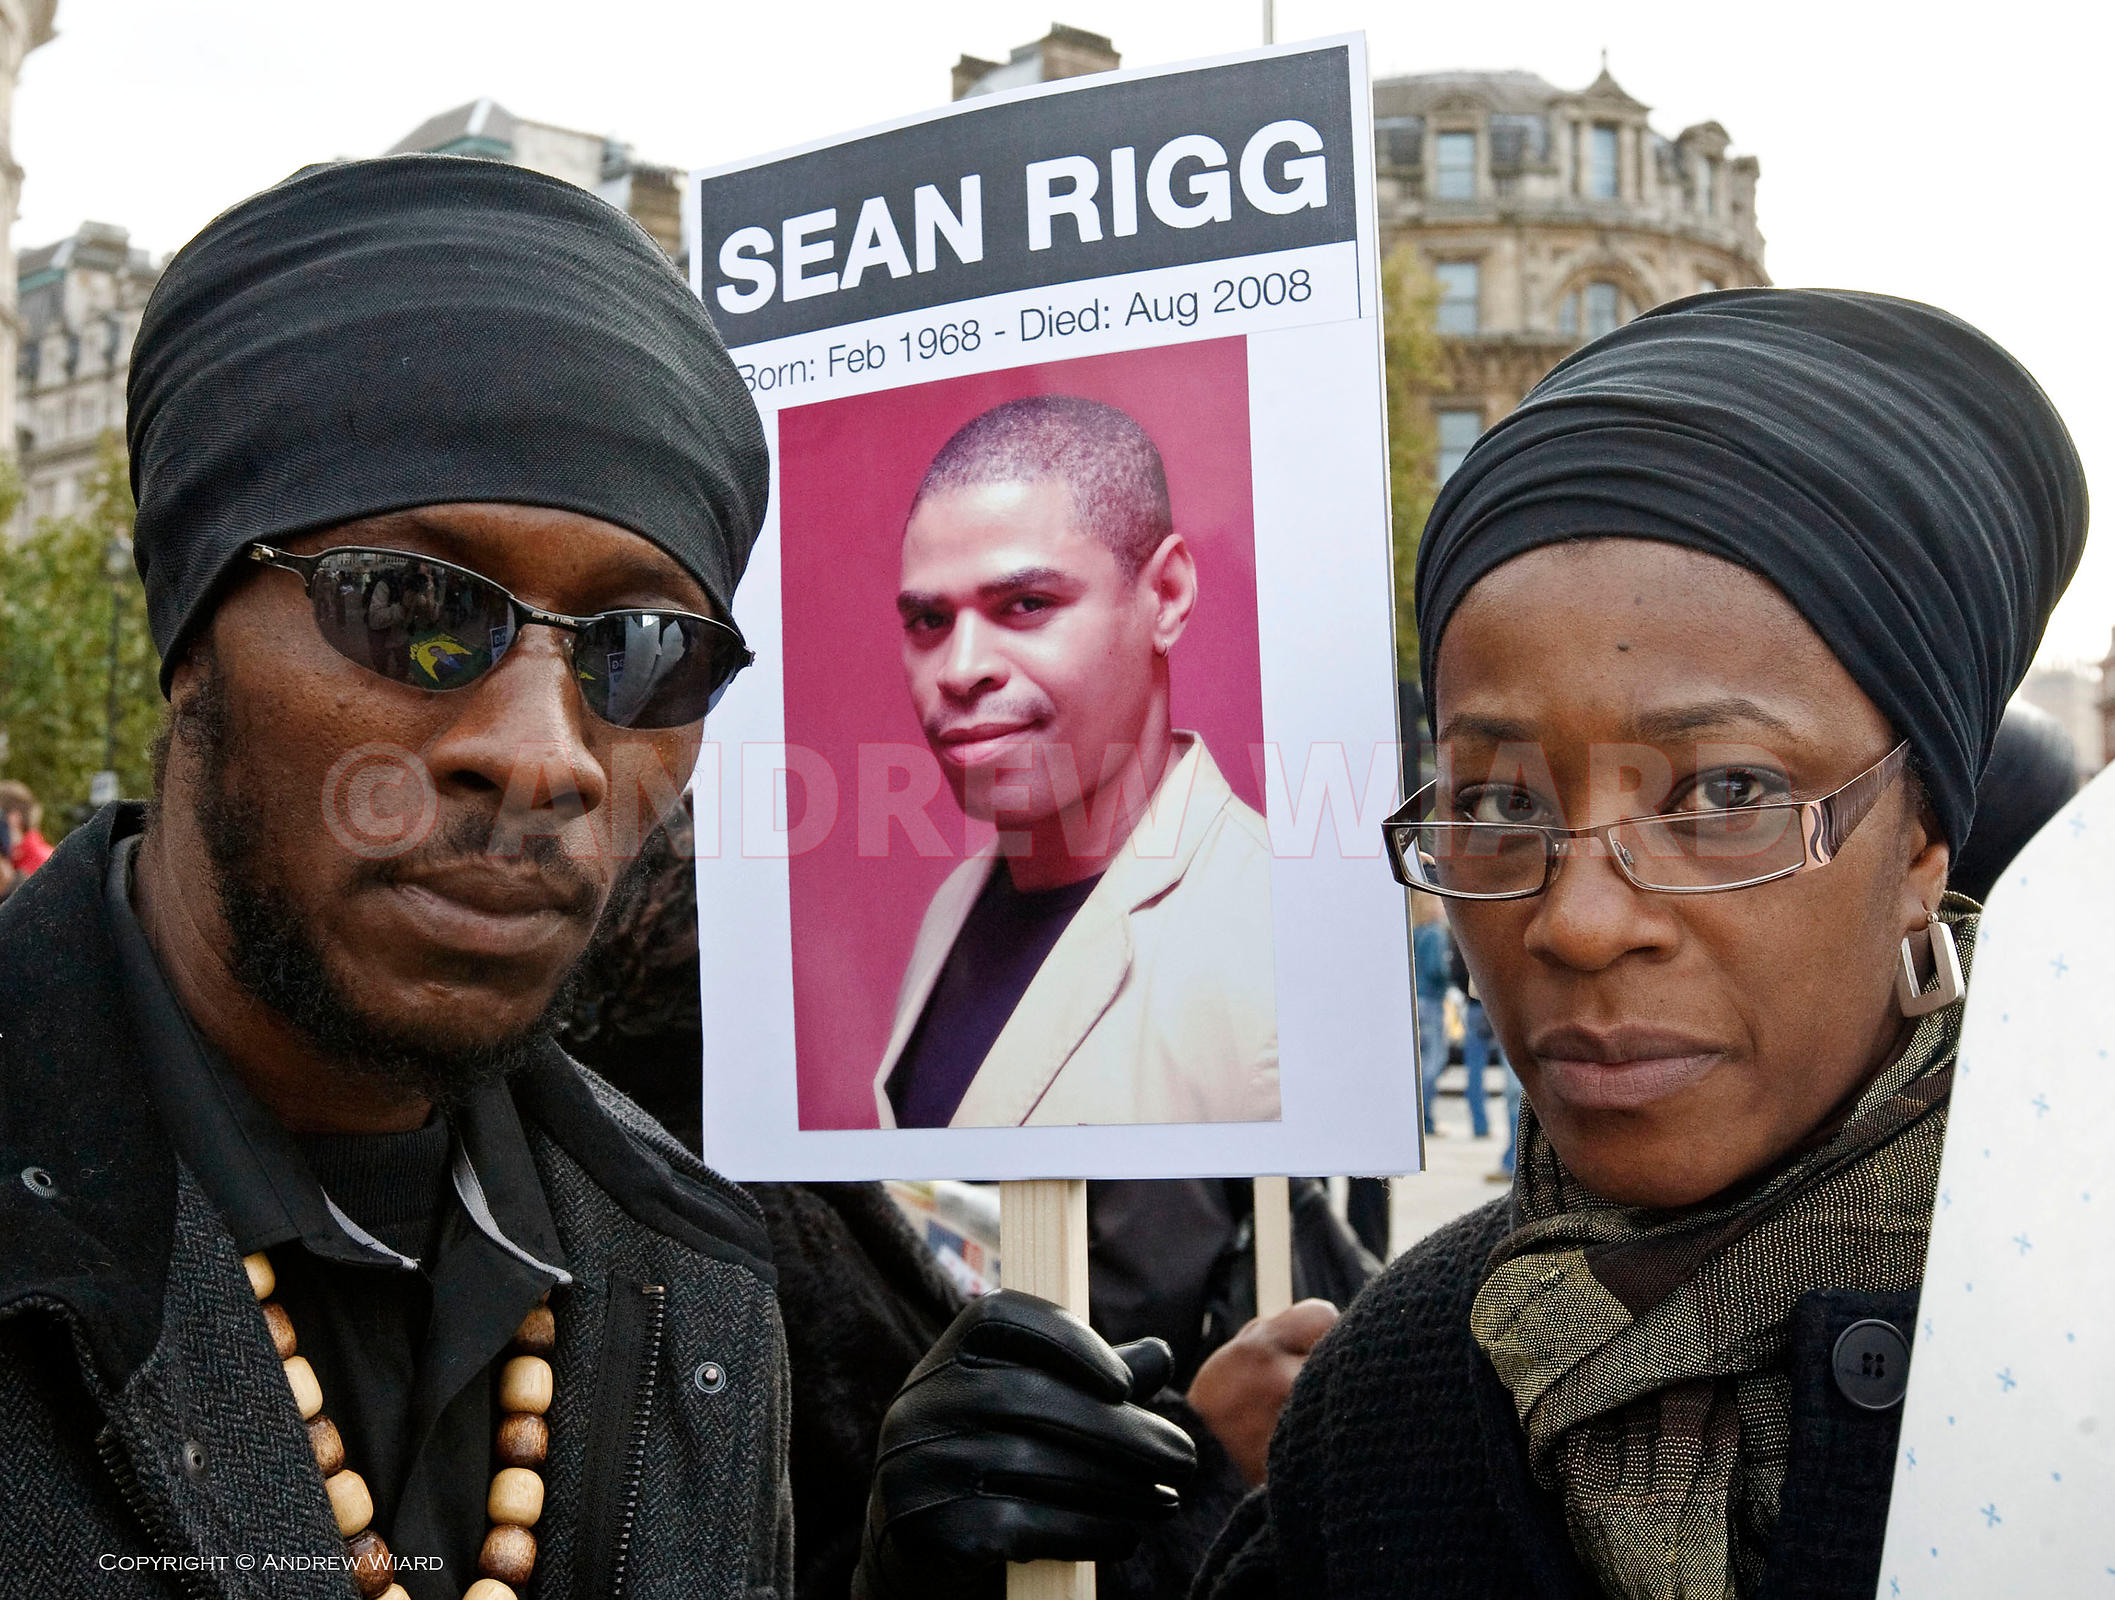 Sean Rigg, who suffered from paranoid schizophrenia, died following a cardiac arrest on 21 August 2008 while in police custod...